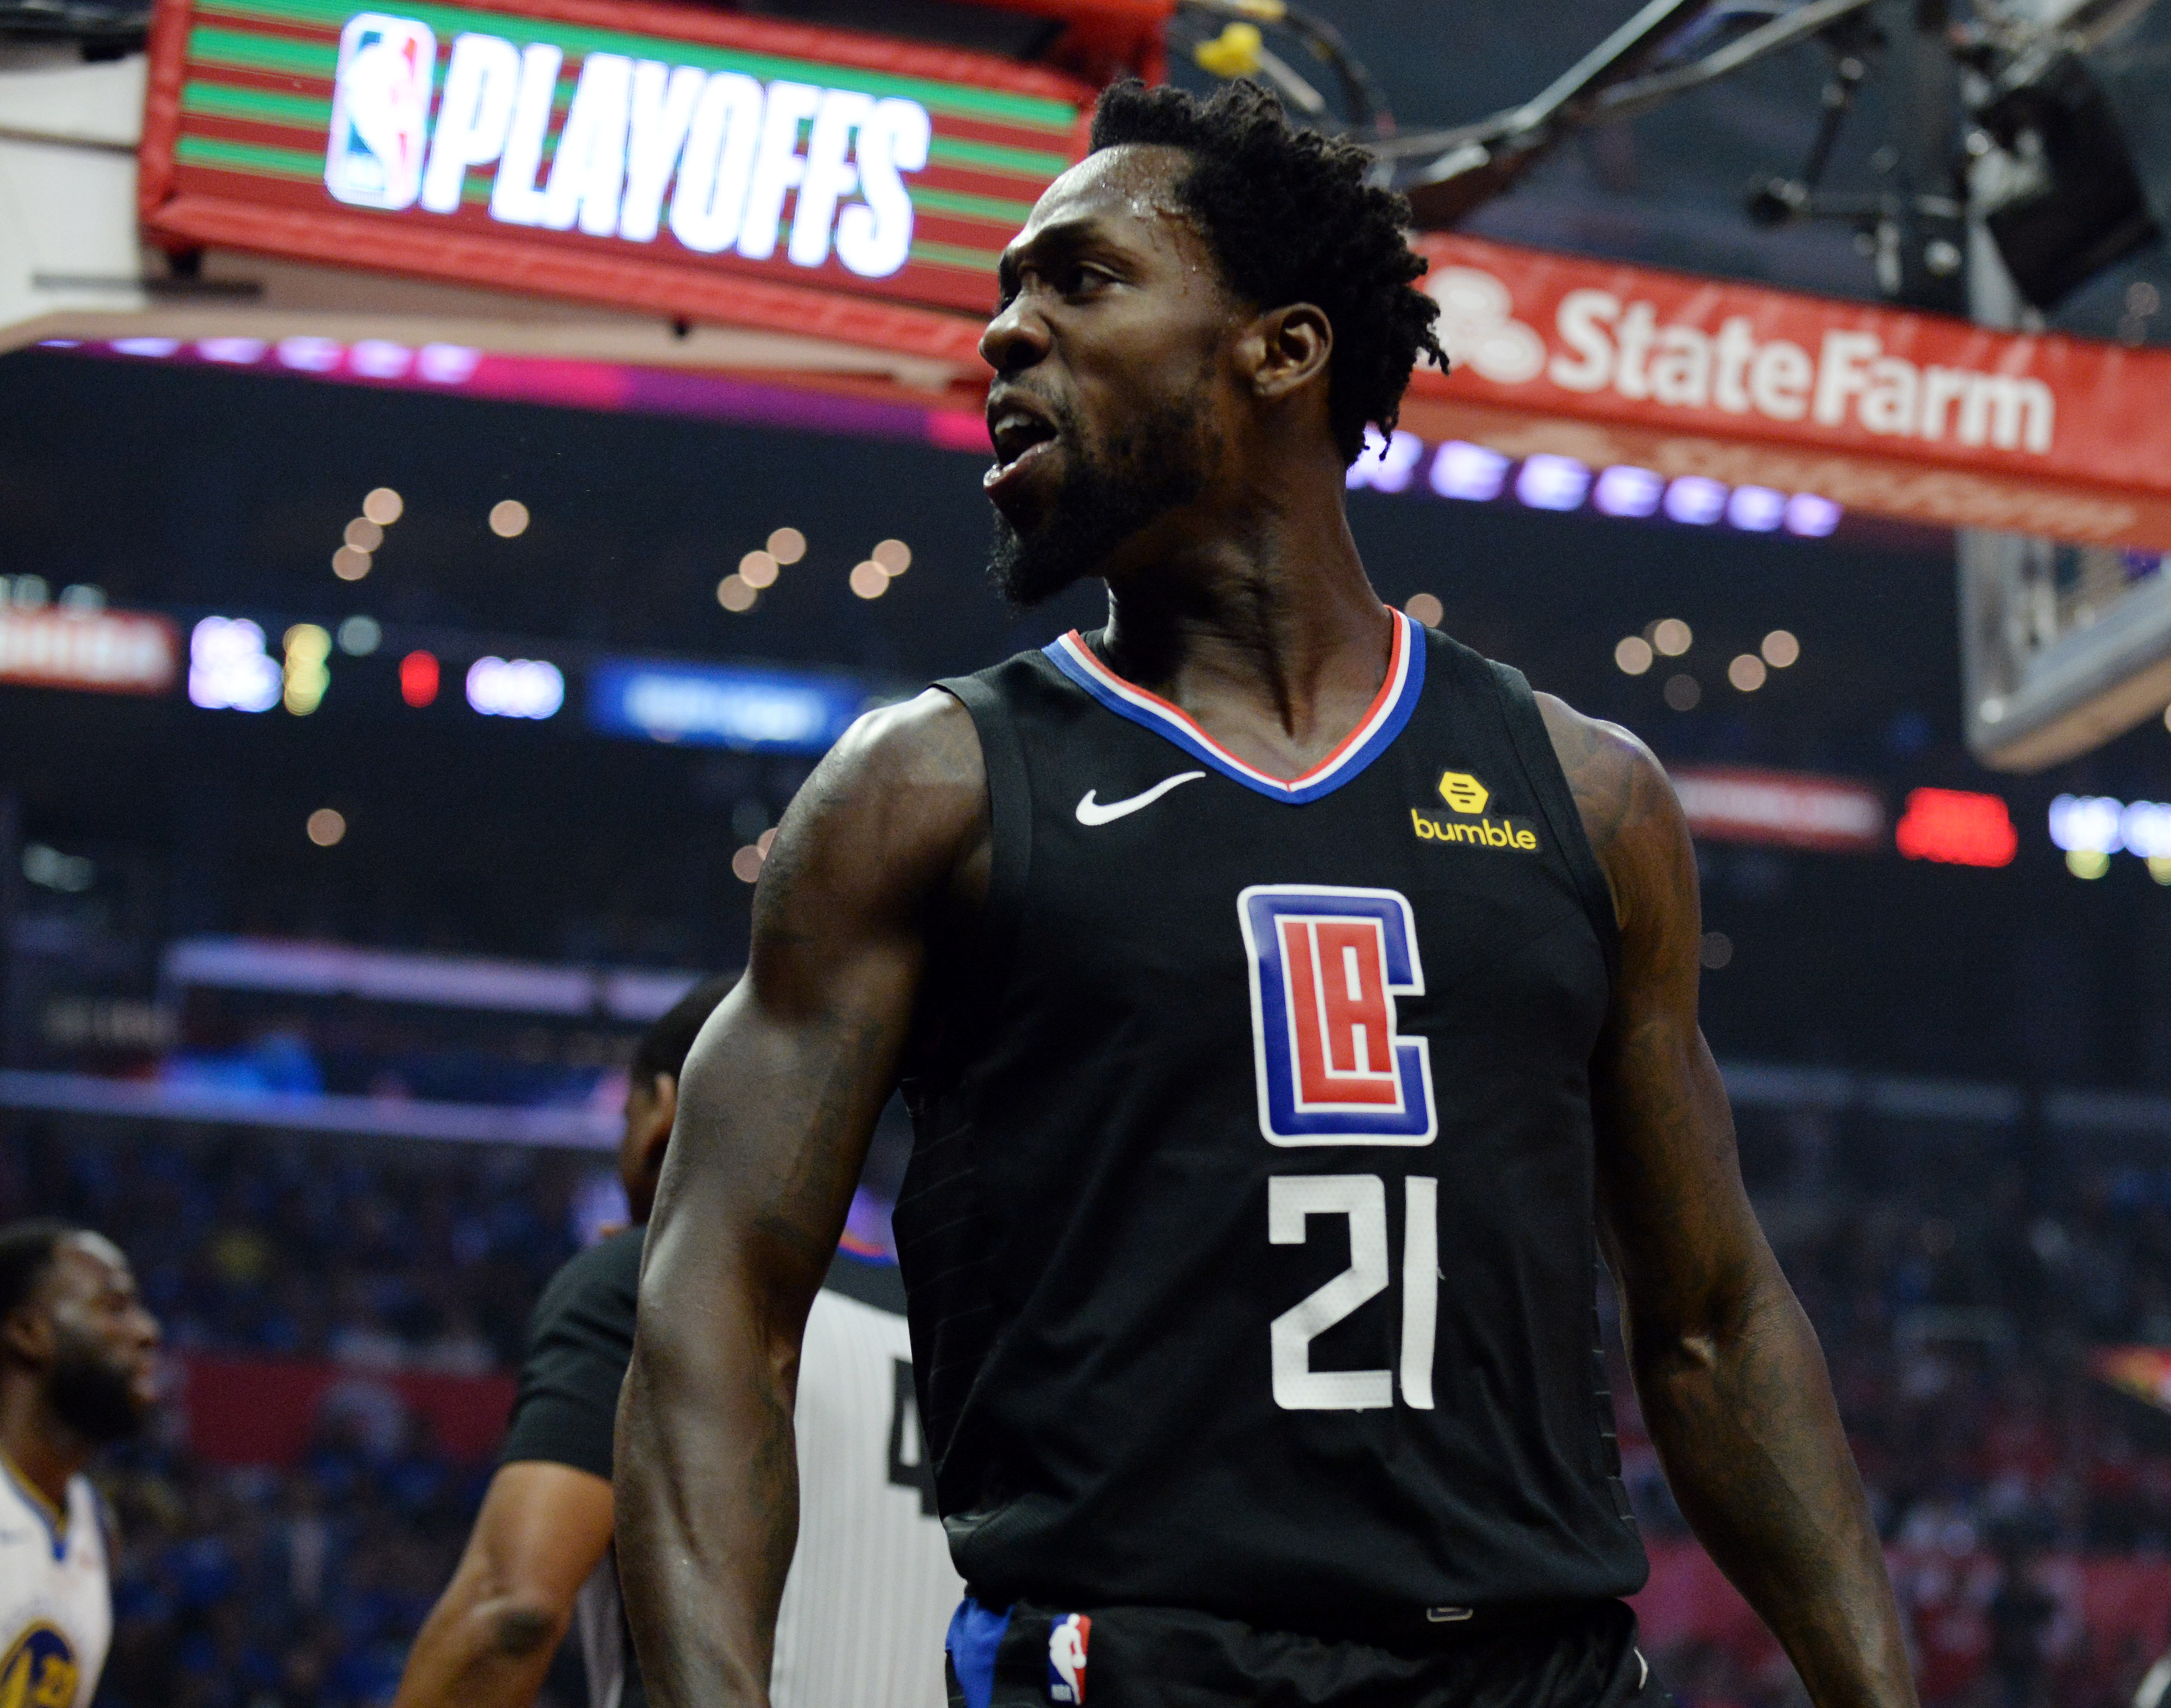 The Most Underrated 2019 NBA Free Agency Moves